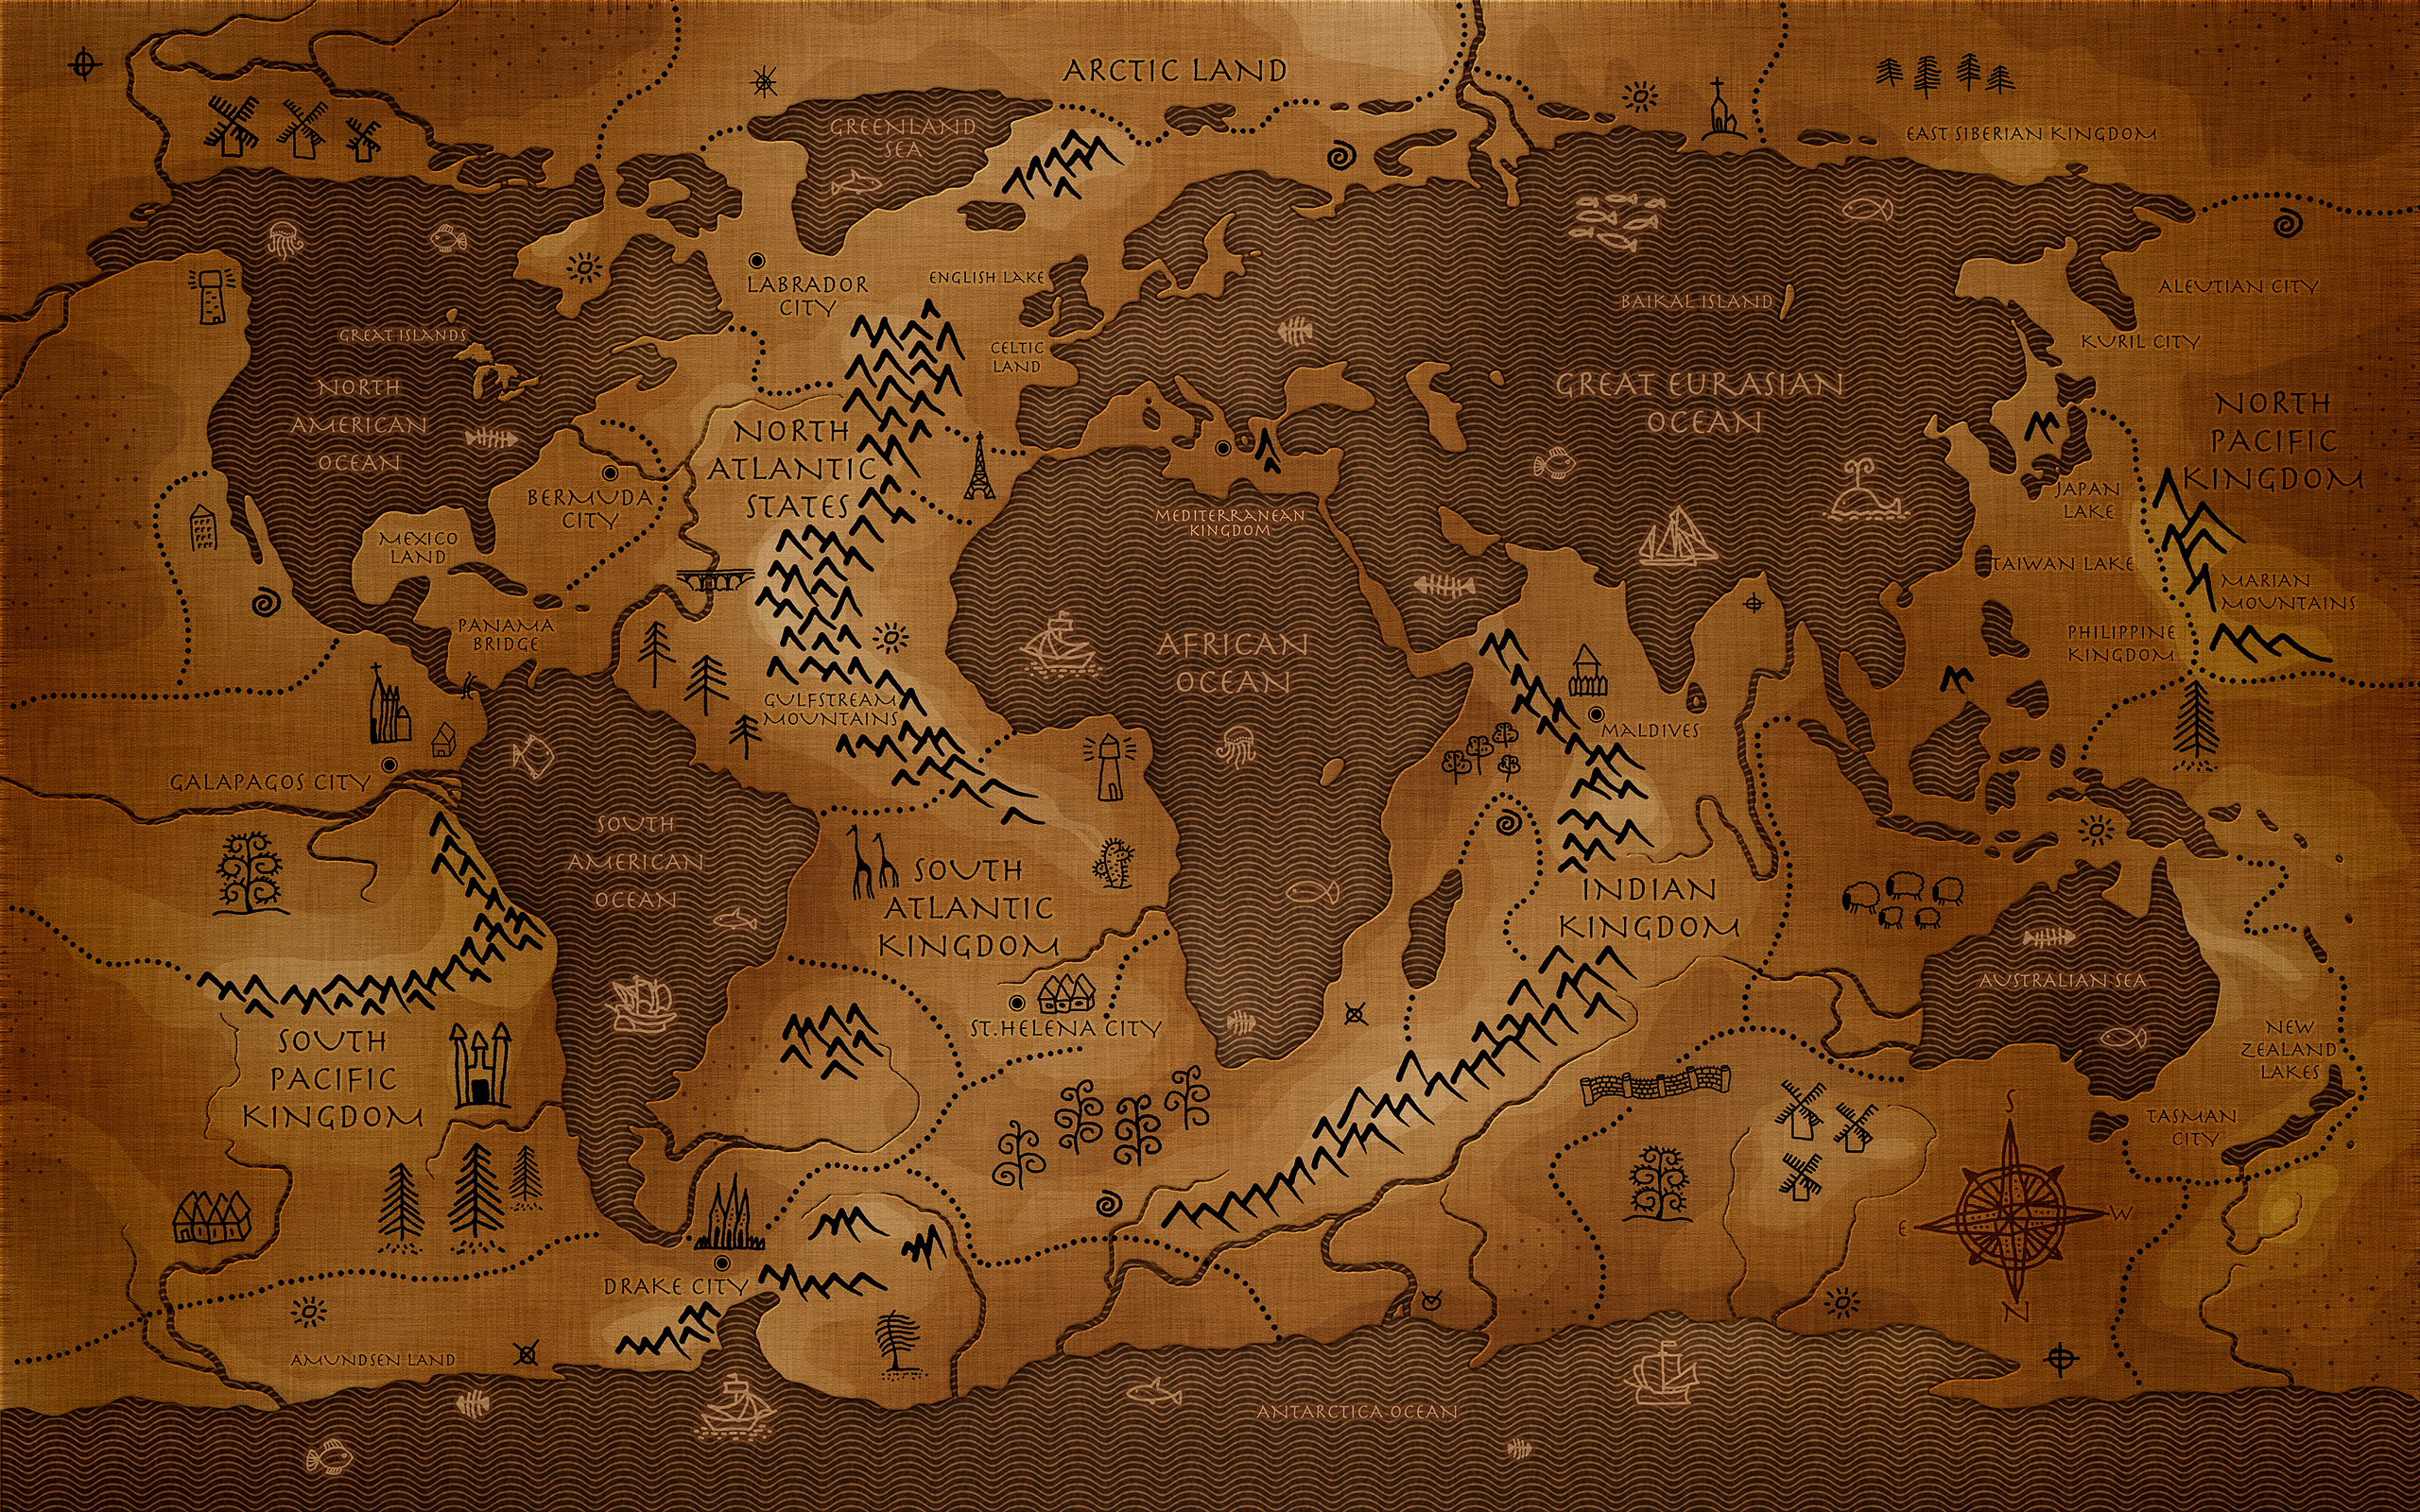 kb jpeg world map 1920 x 1200 642 kb jpeg vintage old world map 1600 x 2560x1600